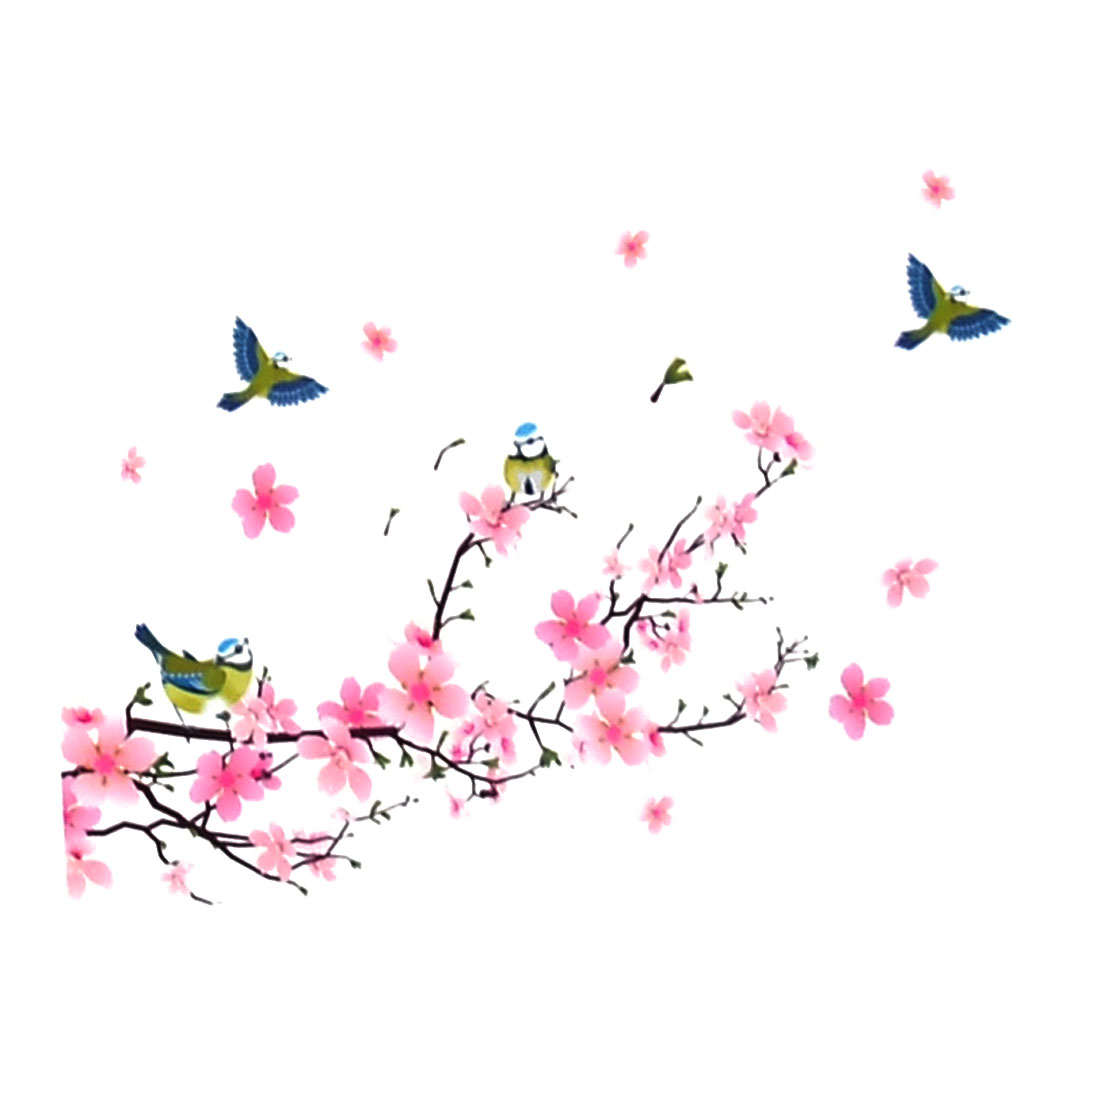 Room Art Decor Cherry Blossom Pattern Removable Wall Sticker Decal 50 x 70cm